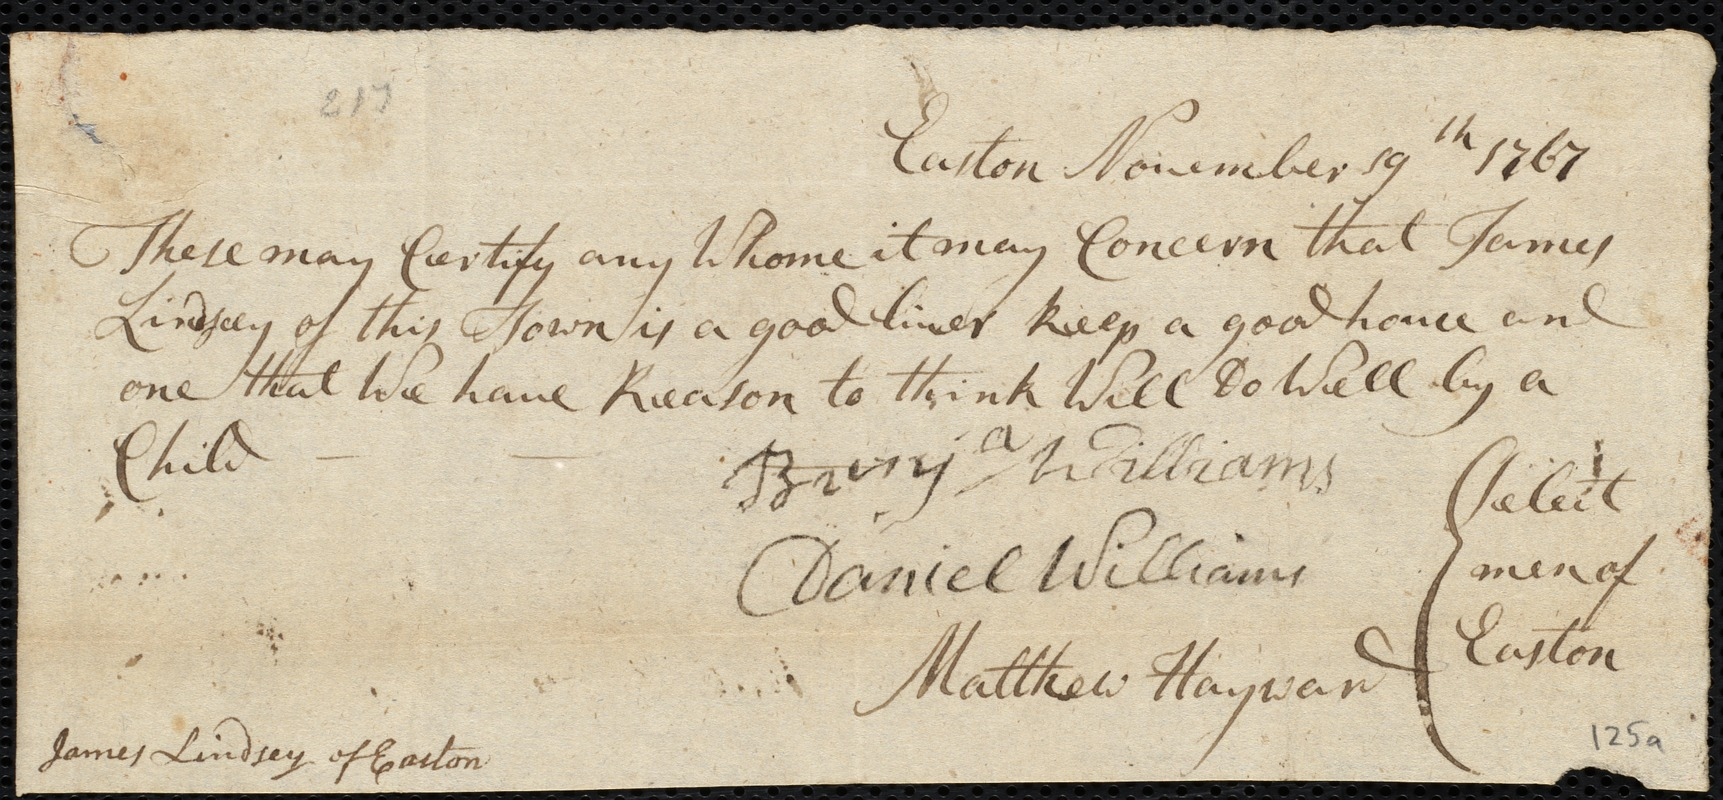 Document of indenture: Servant: Cherry, Samuel. Master: Lindsay, James. Town of Master: Easton. Selectmen ot the town of Easton autograph document signed to the Overseers of the Poor of the town of Boston: Endorsement Certificate for James Lindsay.